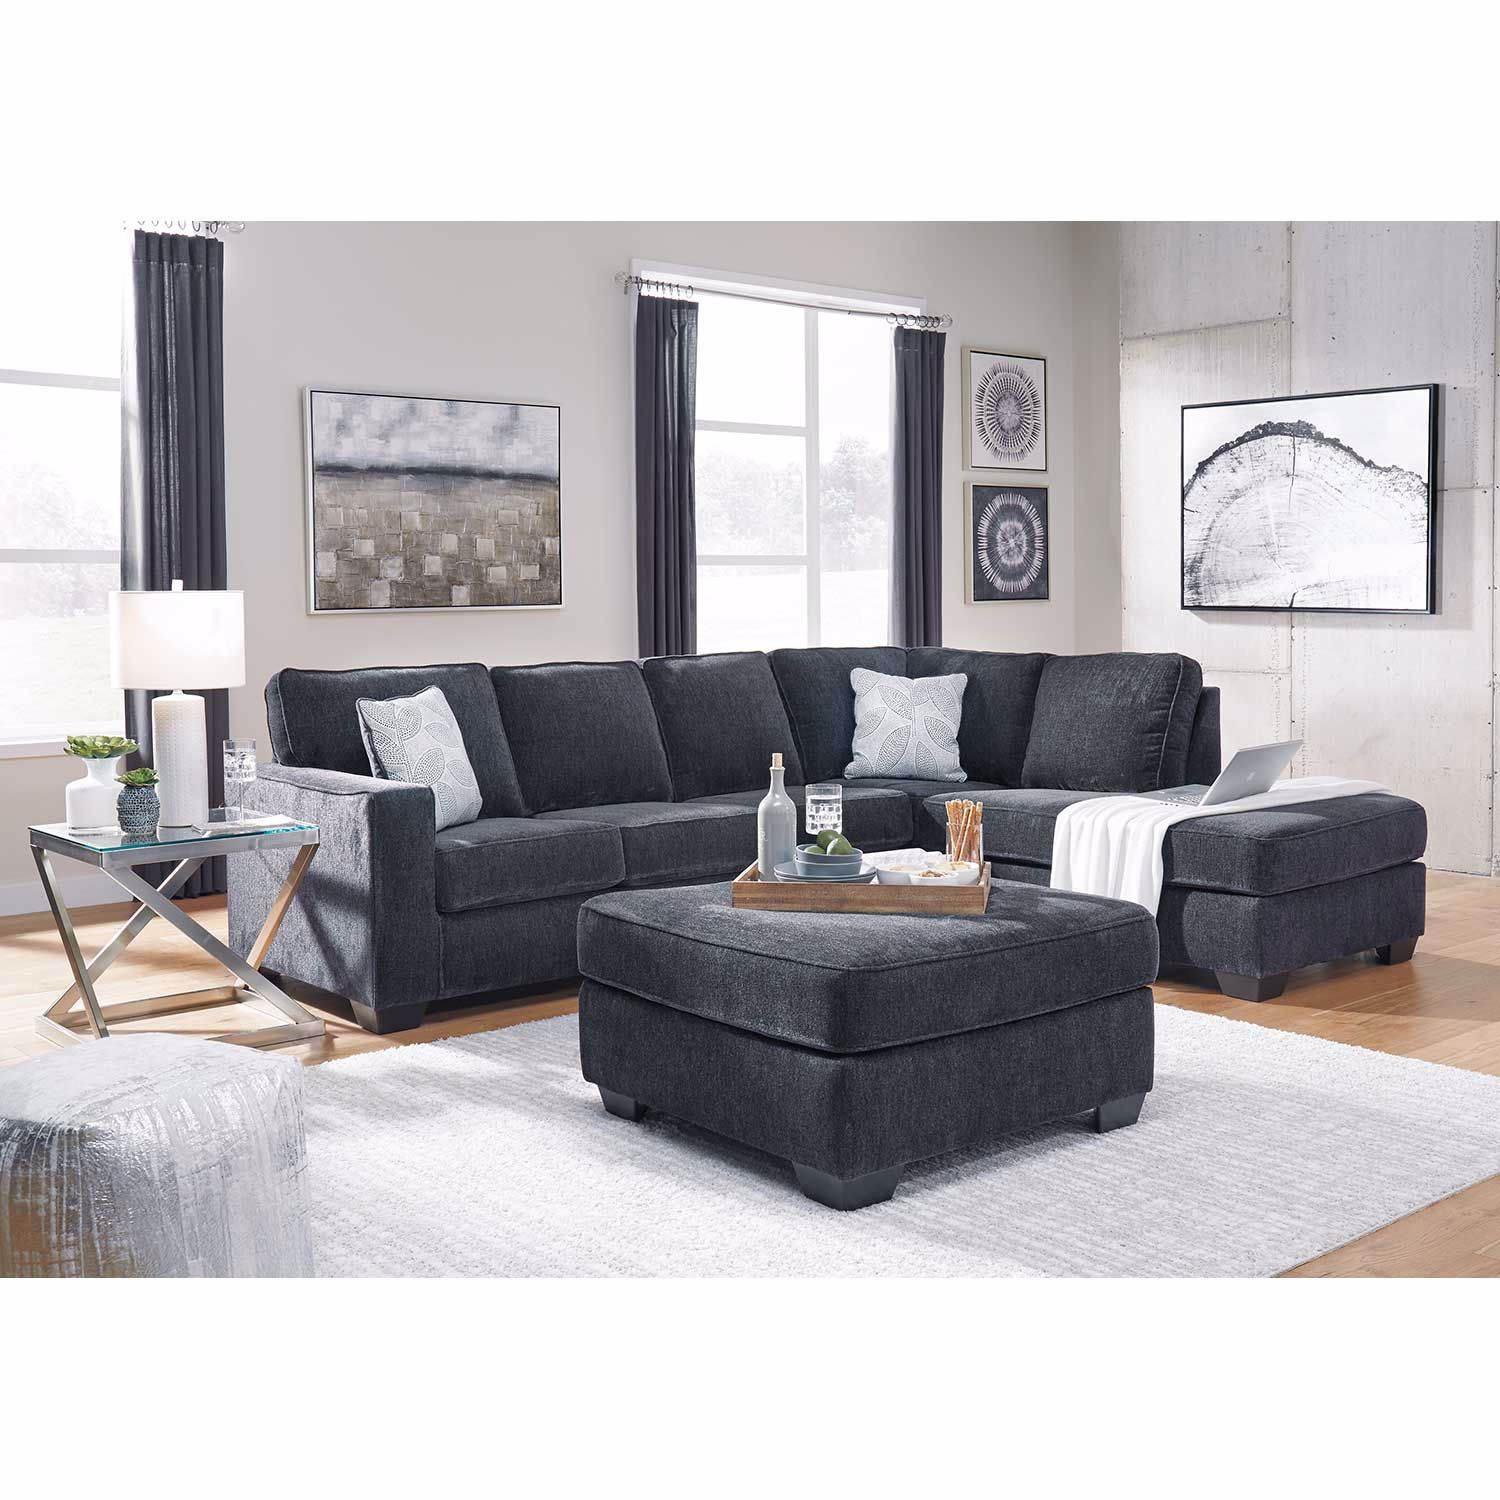 Picture of Altari Slate 2 PC Sectional with RAF Chaise